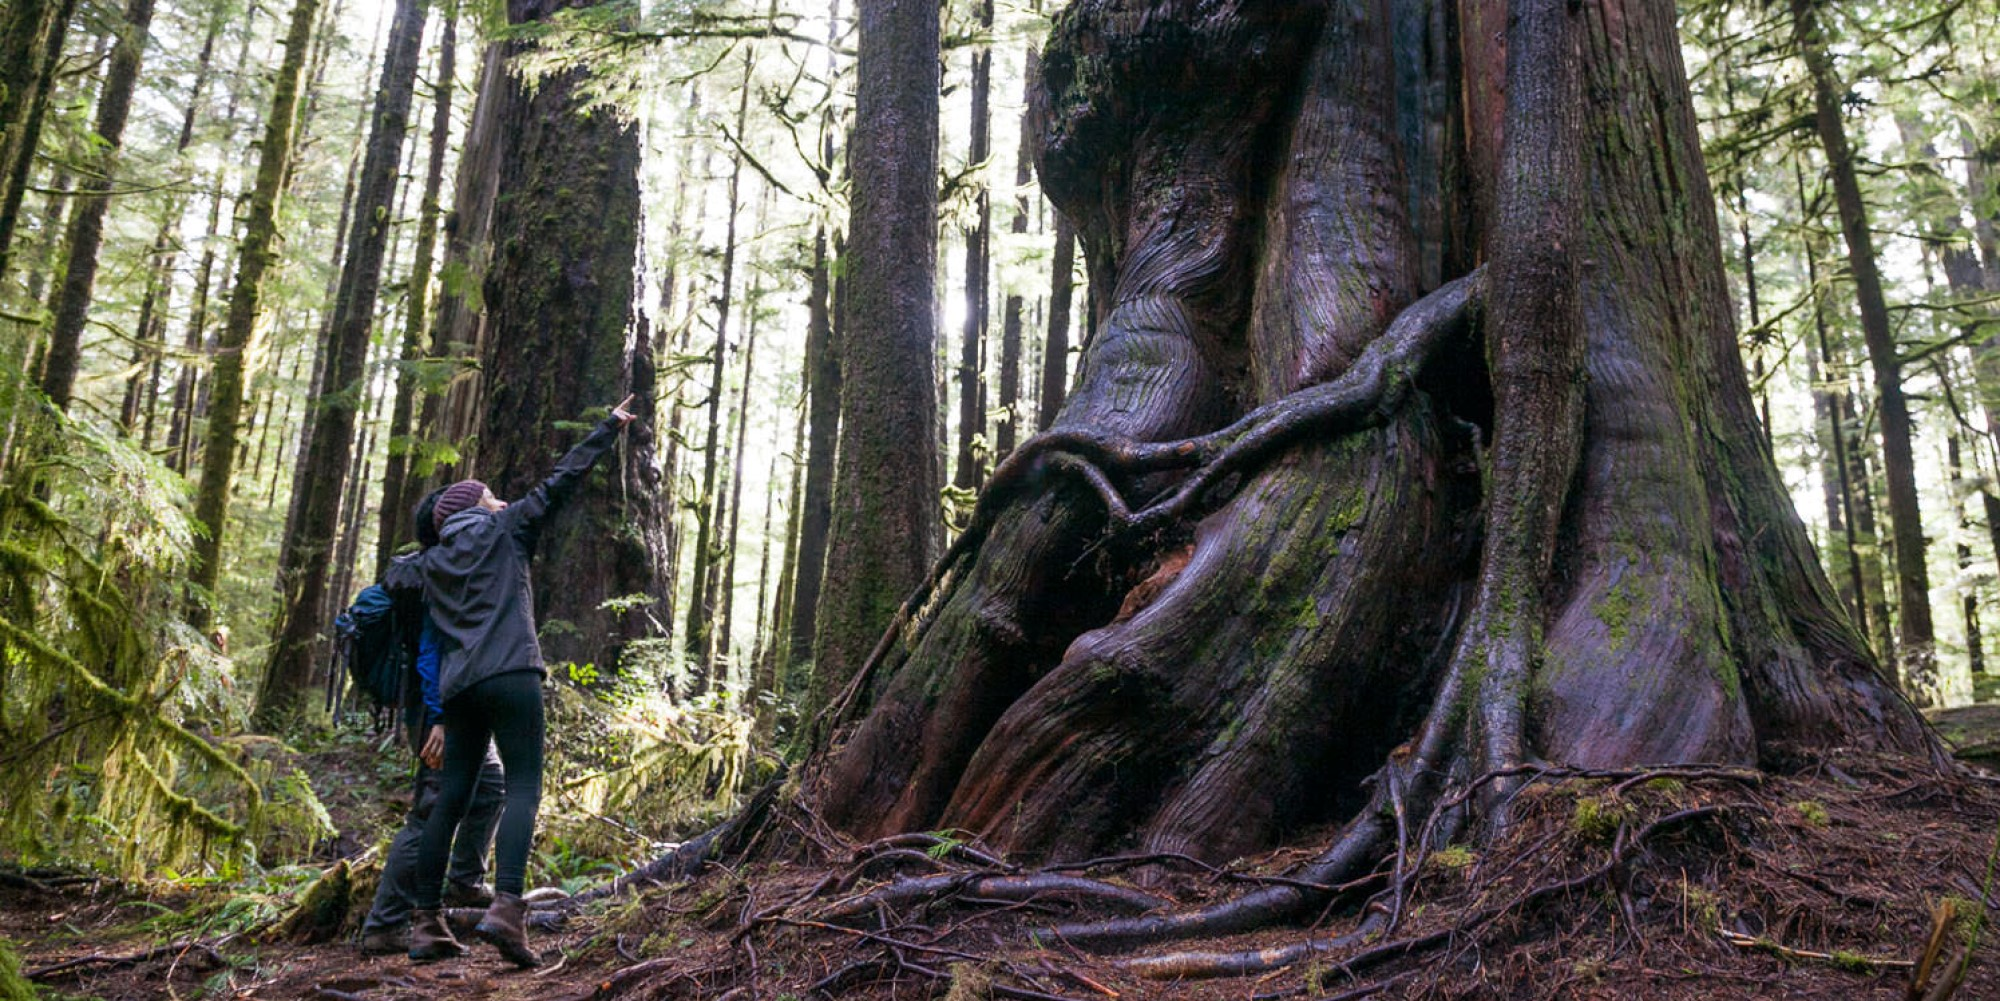 Time for a staycation: Our guide to Vancouver Island's hidden gems